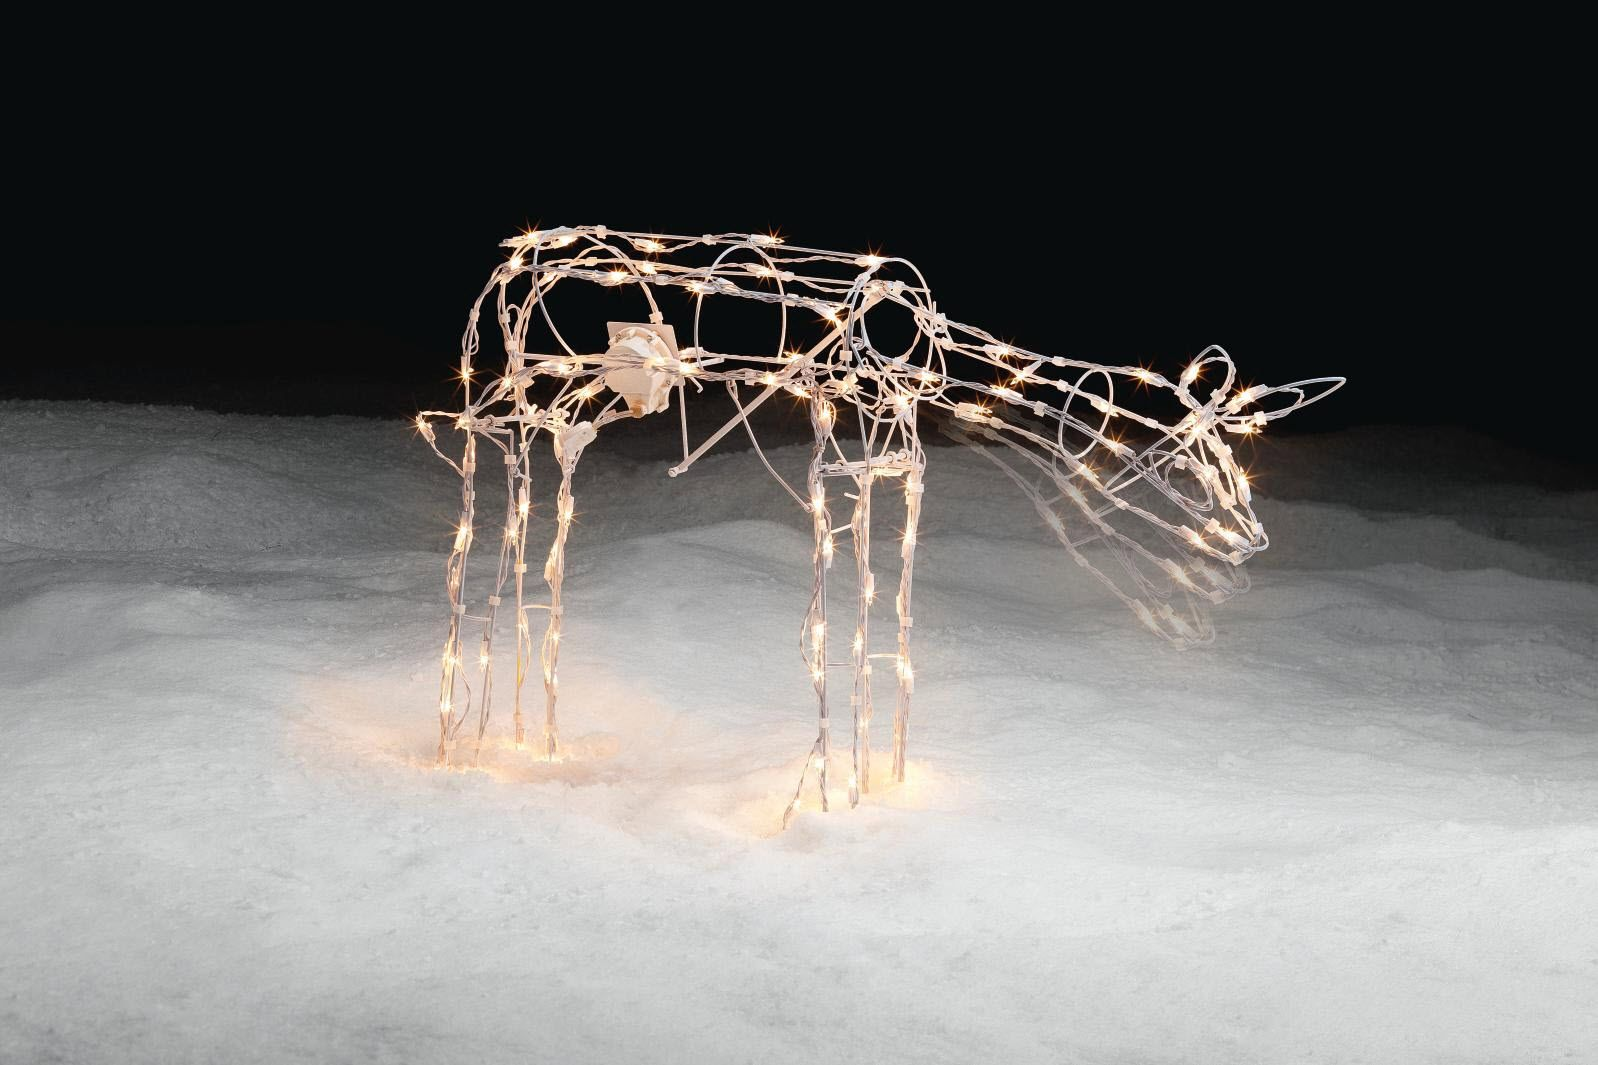 42in Christmas Animated Lighted Grazing Deer                                                                                     at mygofer.com